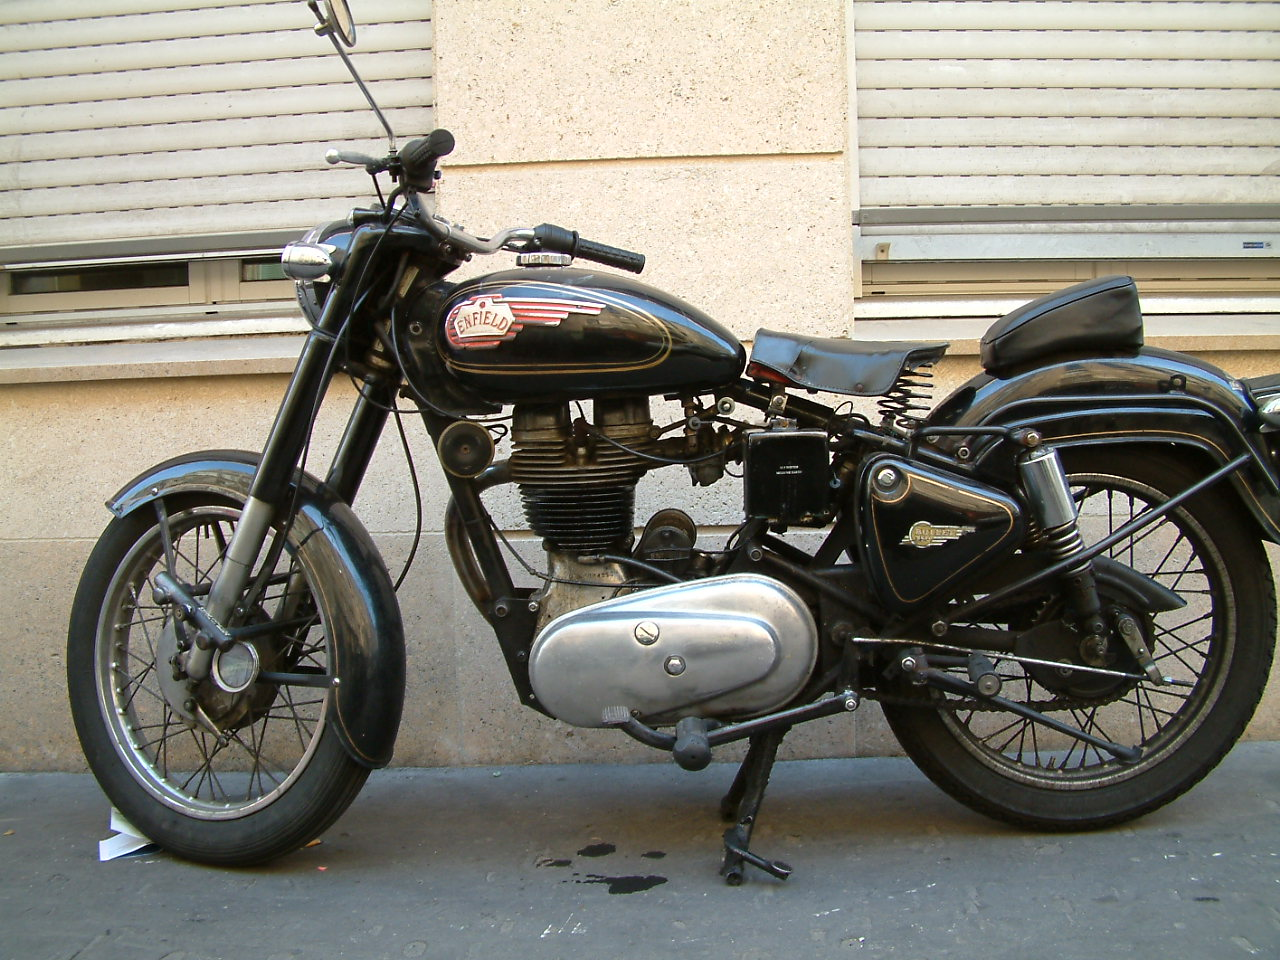 Royal Enfield Bullet 500 Army 2002 images #123417